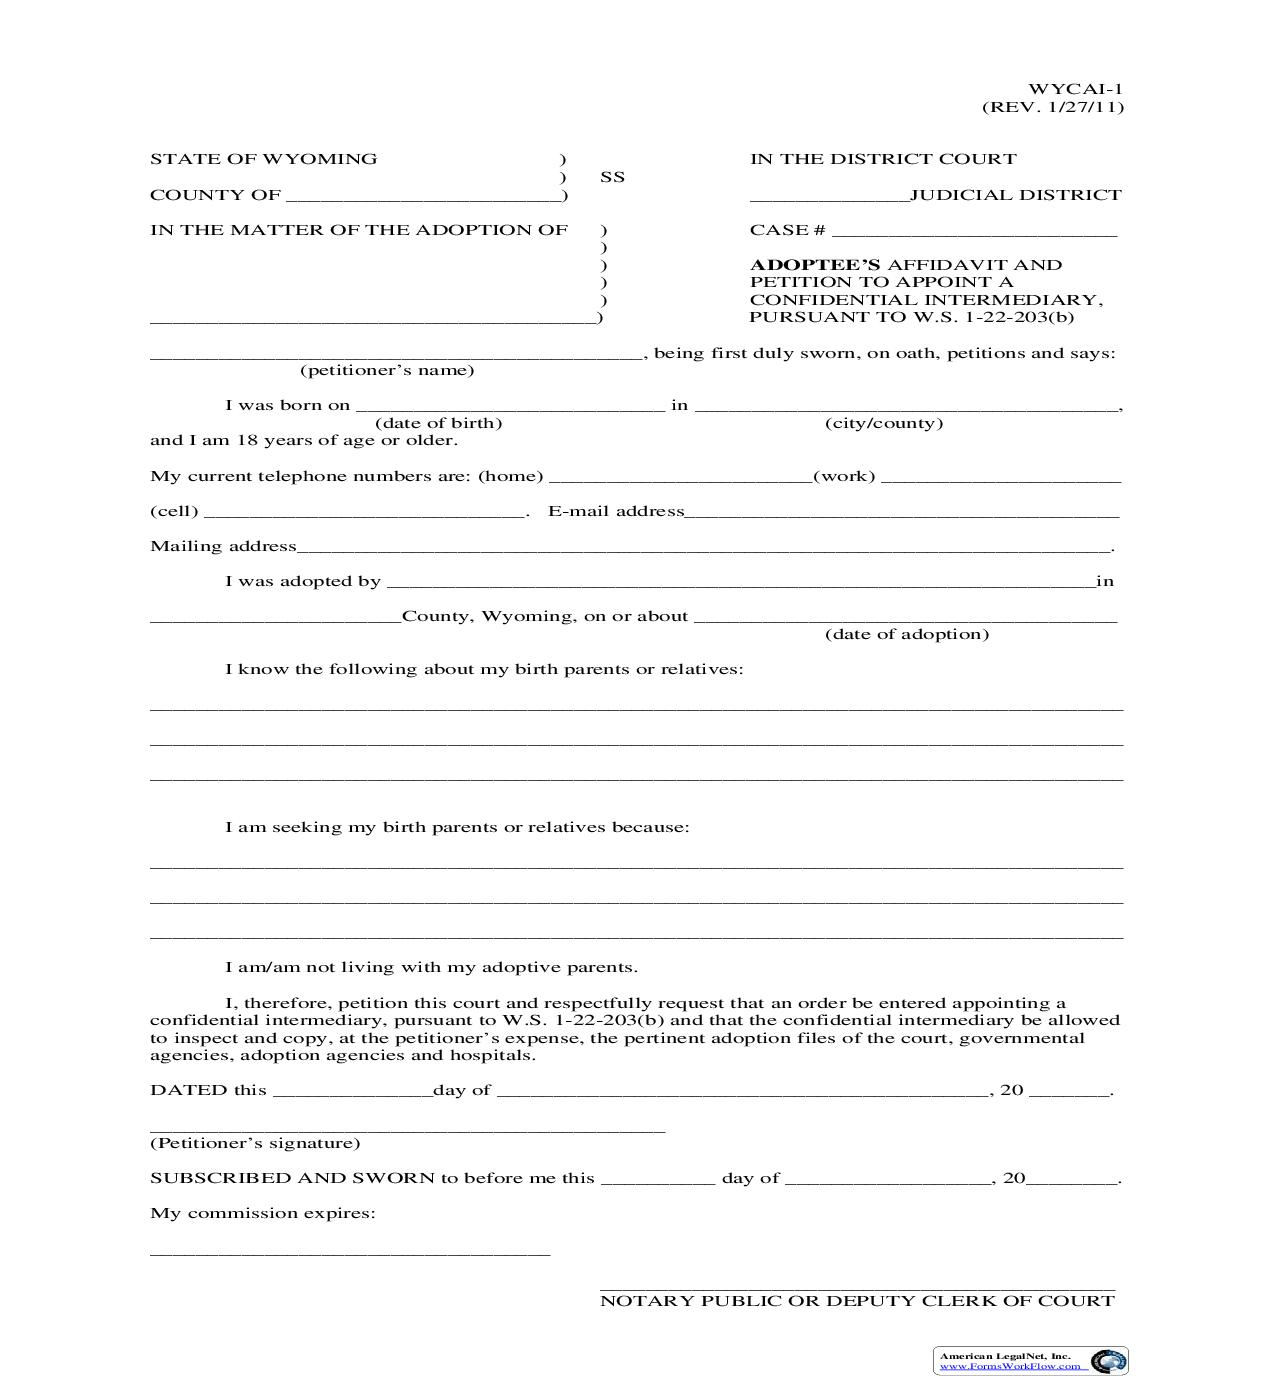 Adoptees Affidavit And Petition To Appoint A Confidential Intermediary {WYCAI-1}   Pdf Fpdf Doc Docx   Wyoming